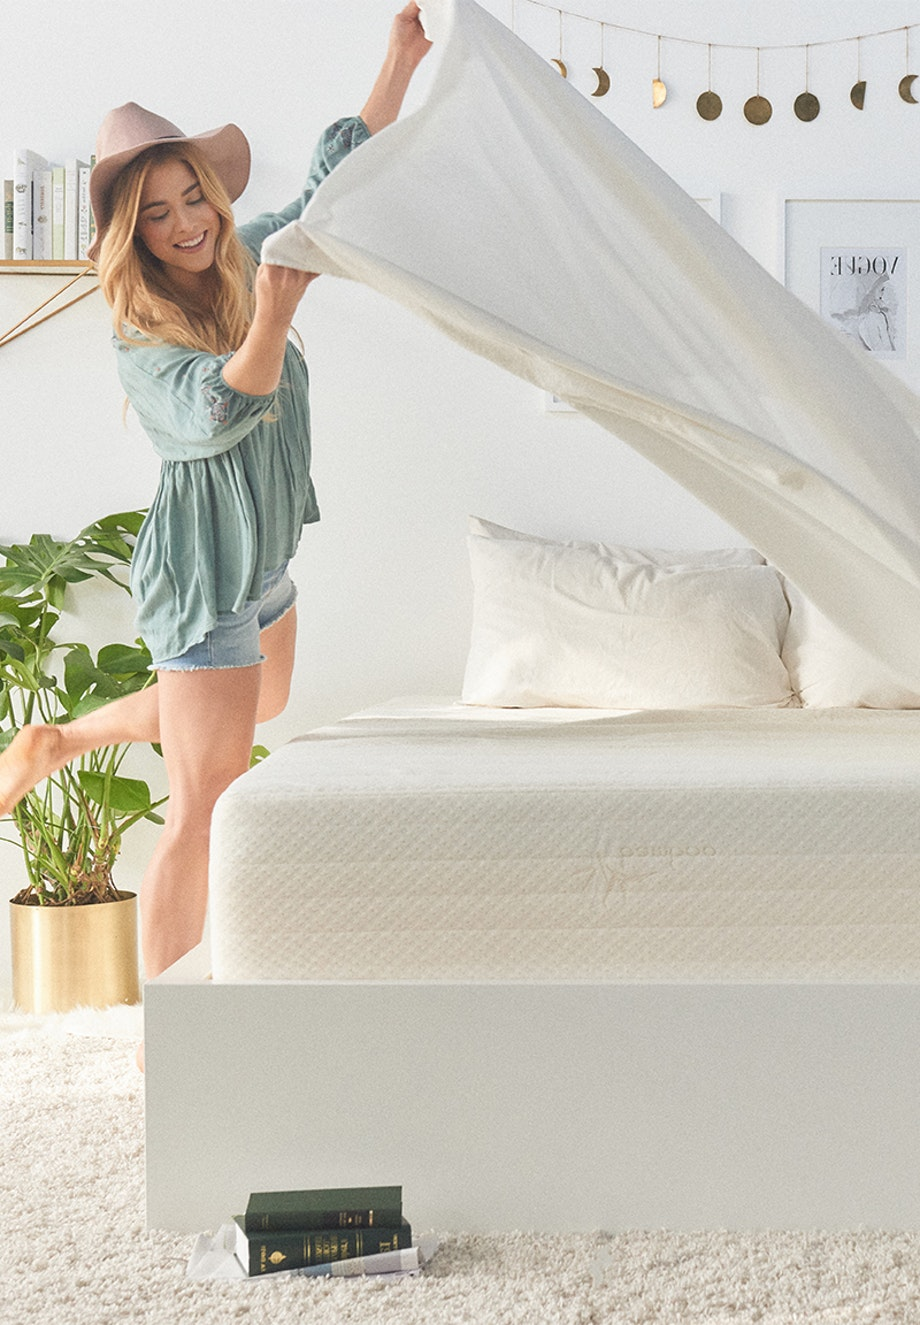 cypress bed vs nectar mattress